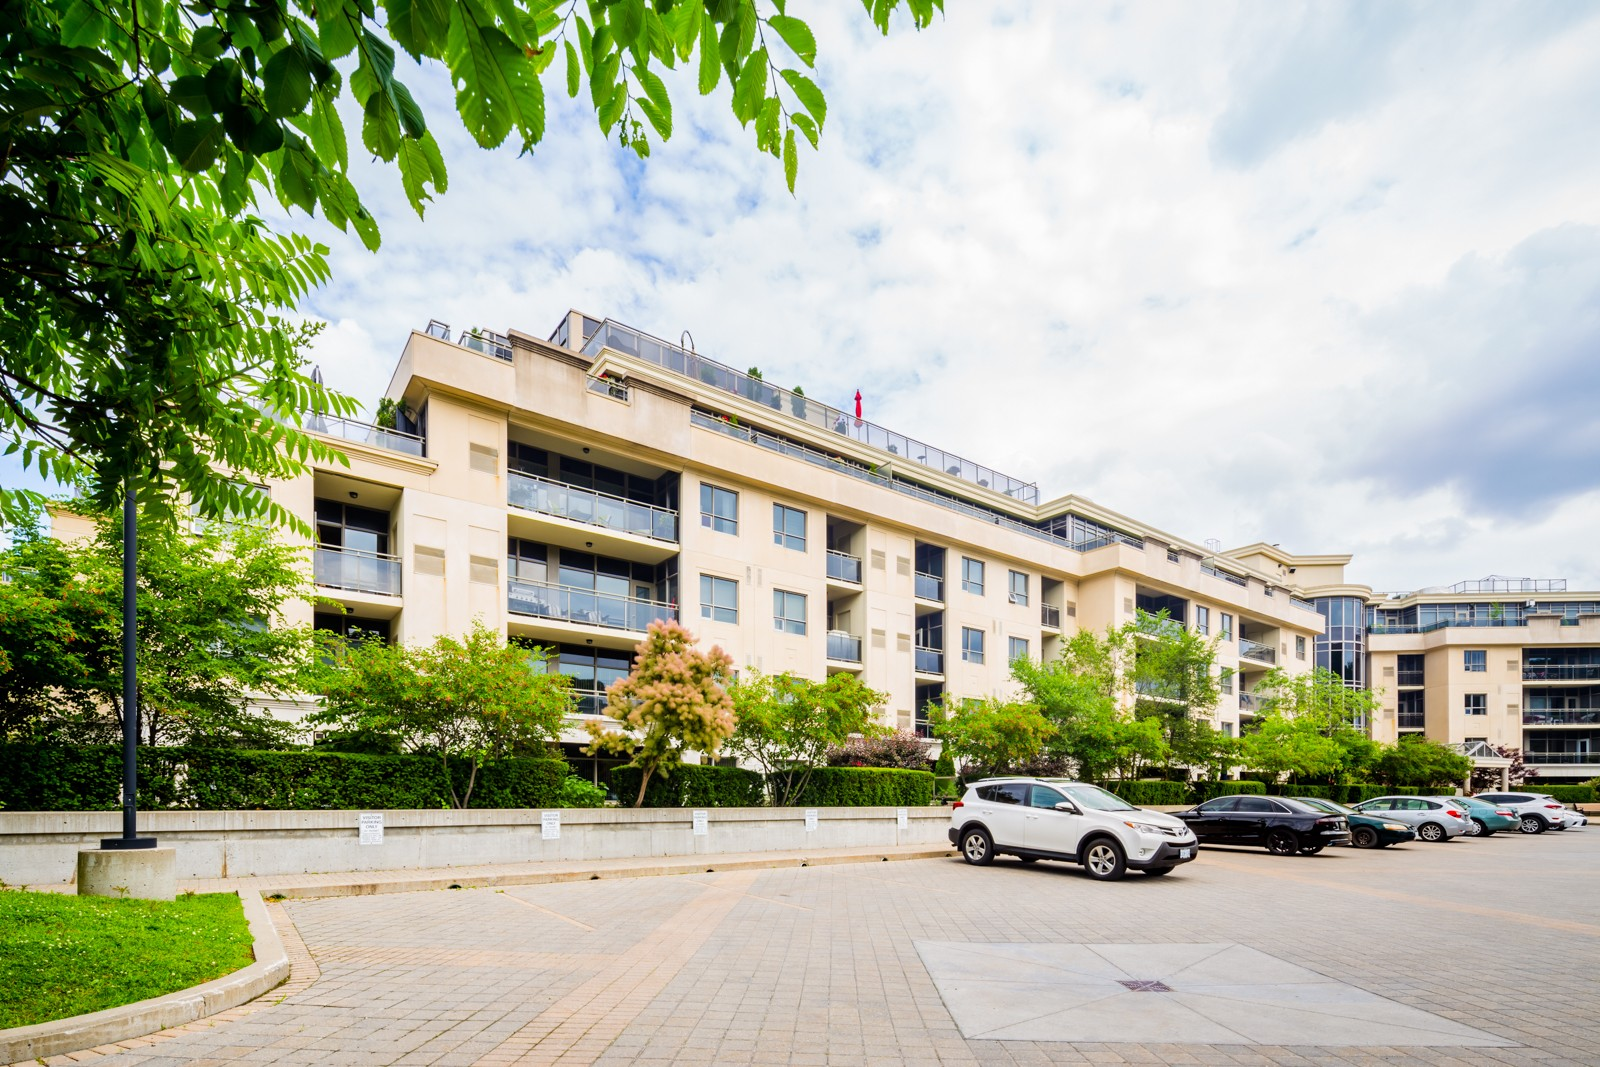 8209 Islington Ave Condos at 8201 Islington Ave, Vaughan 0